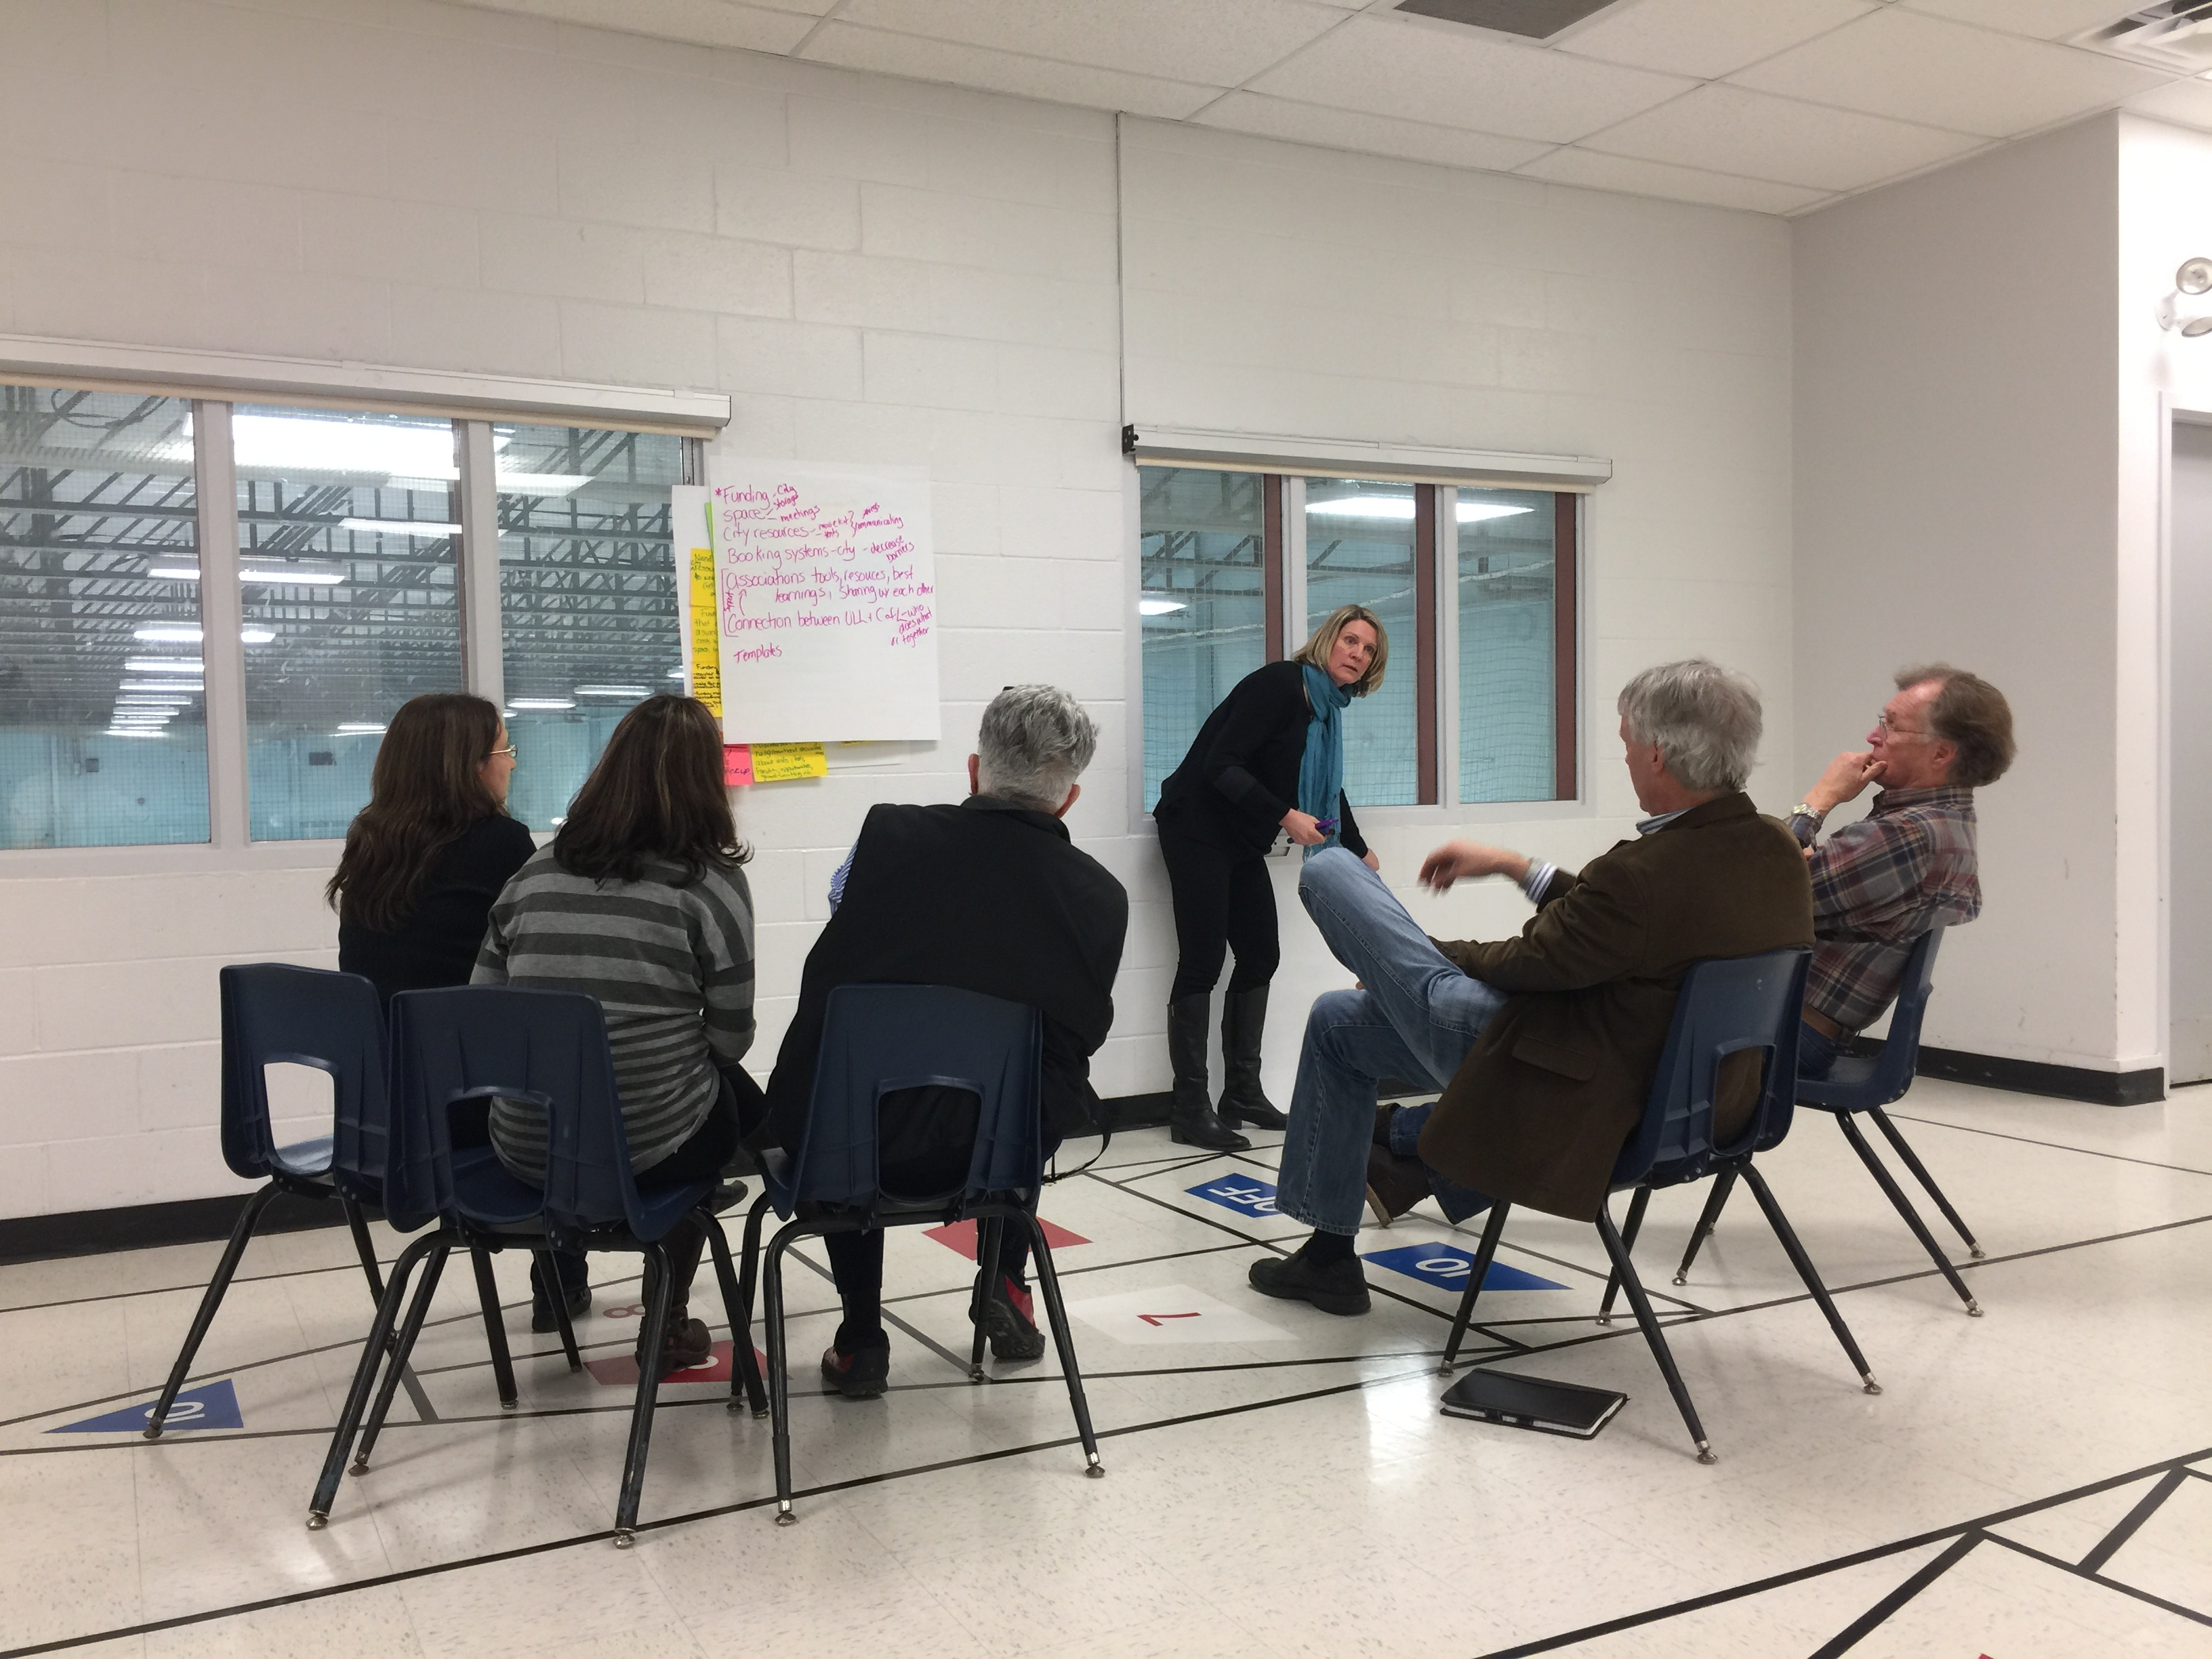 Neighborhood Association leaders developing the draft strategies at the Medway Community Centre.